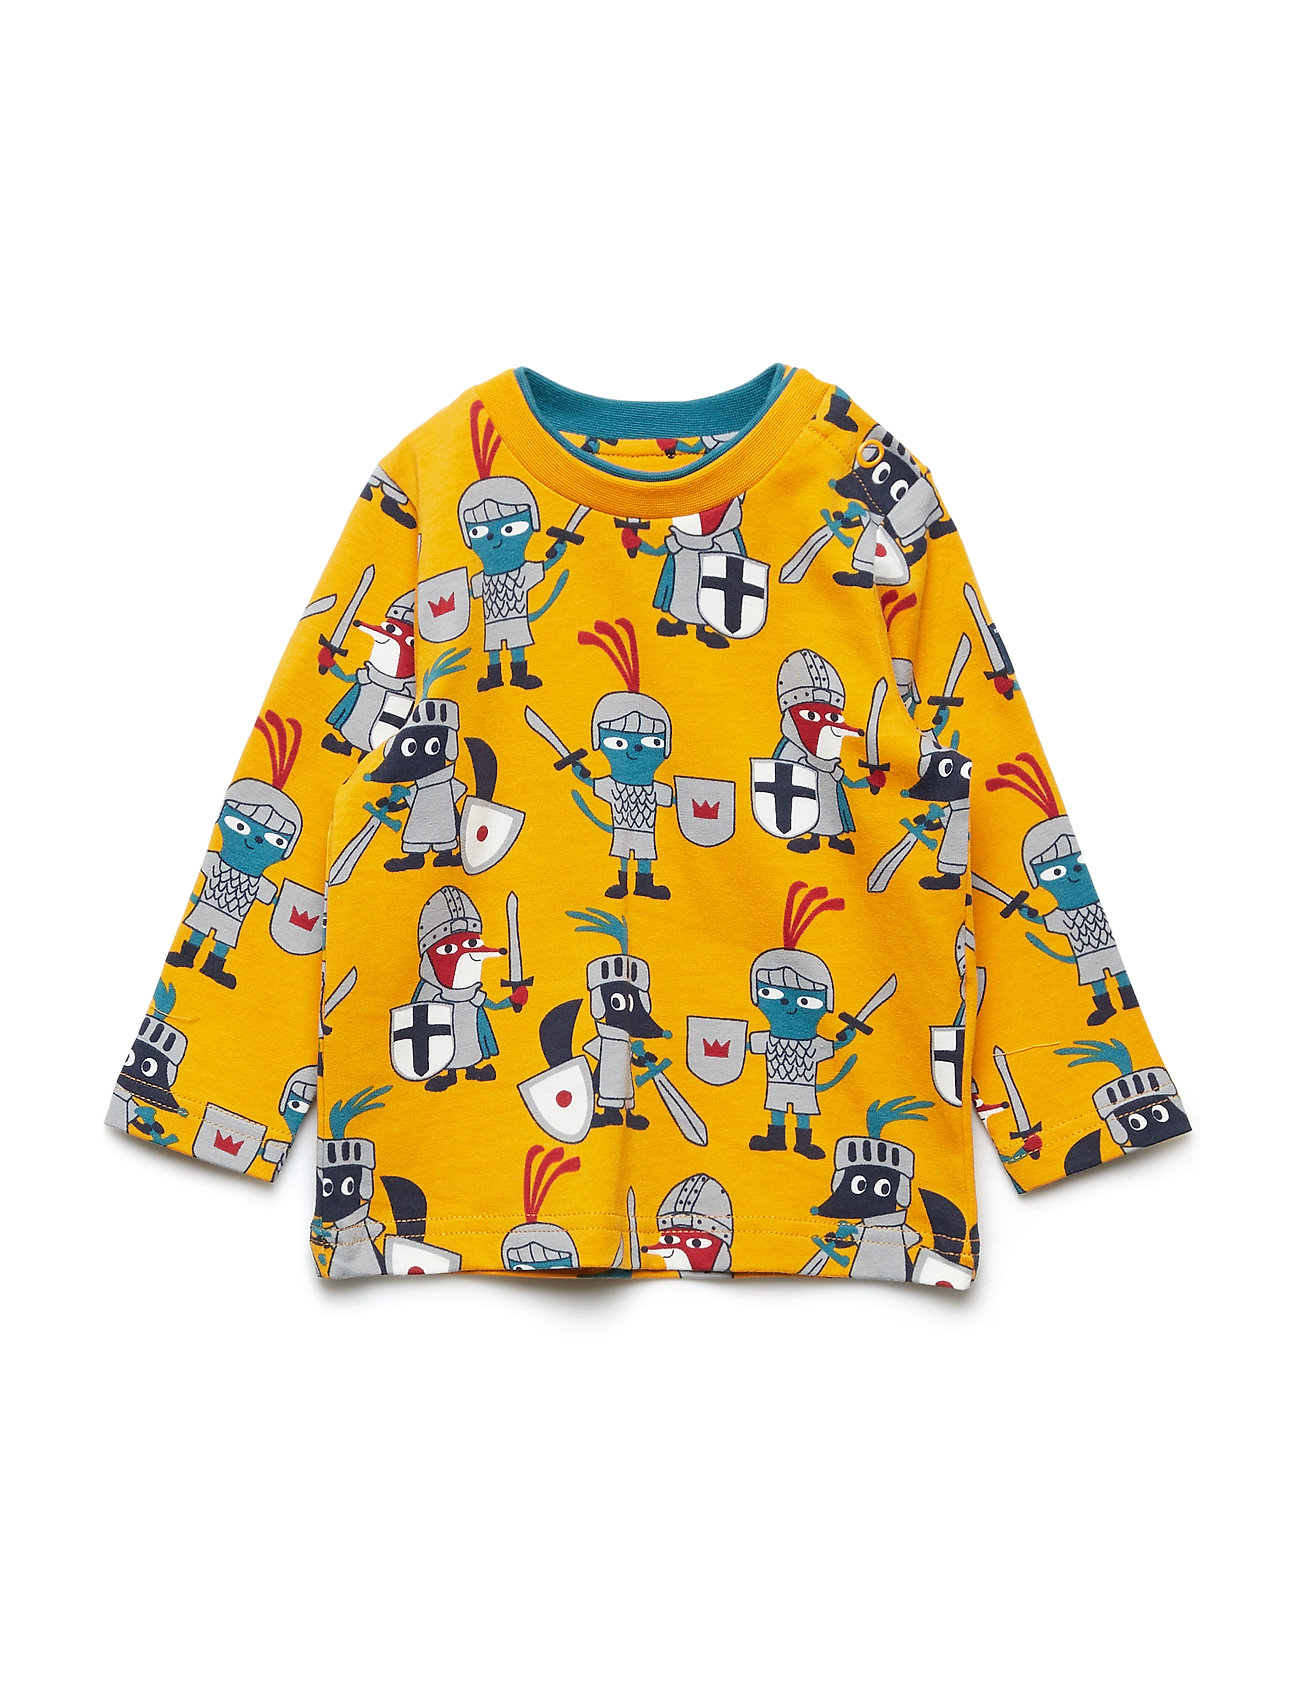 Polarn O. Pyret Top Long Sleeve Baby